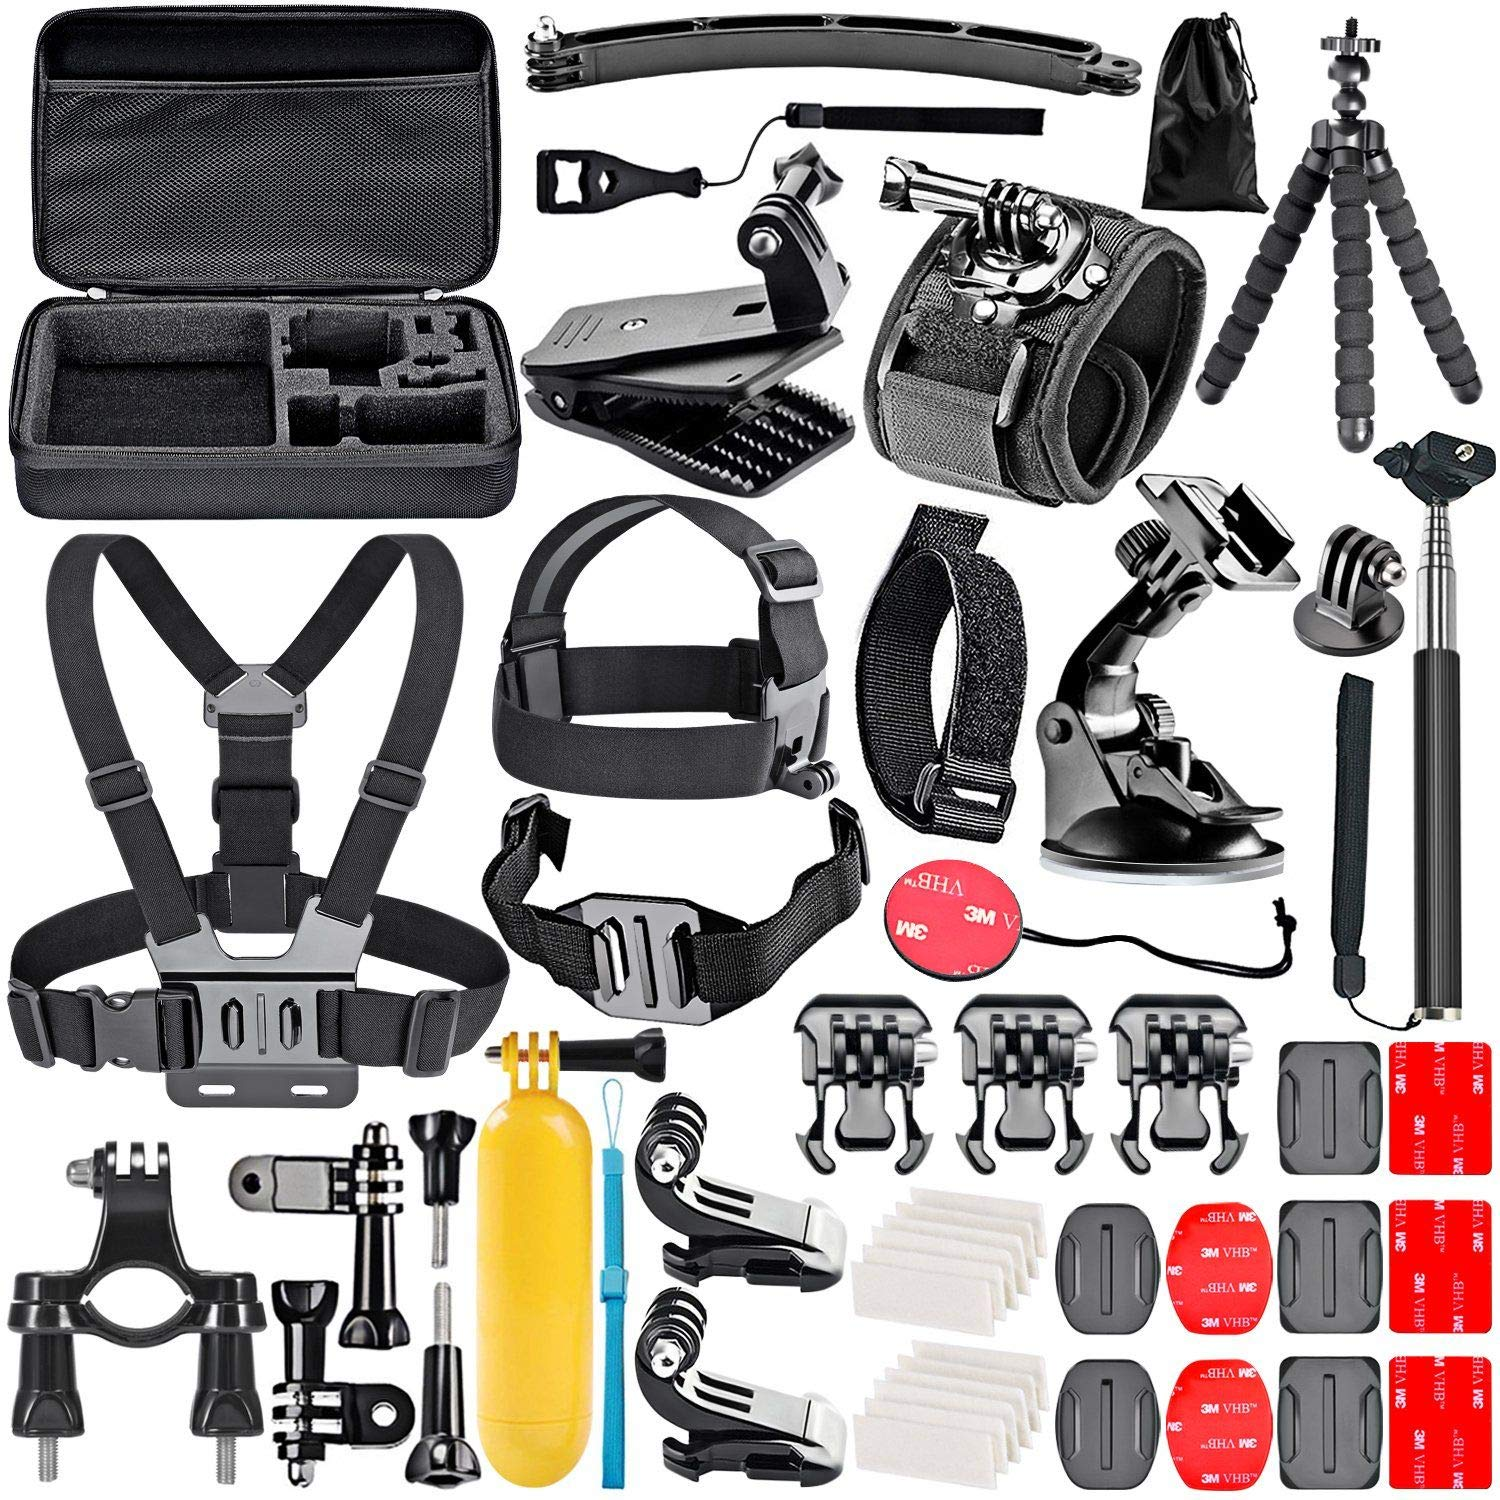 Navitech 9 in 1 Action Camera Accessory Combo Kit and Rugged Grey Storage Case Compatible with The Eken H9R Action Camera